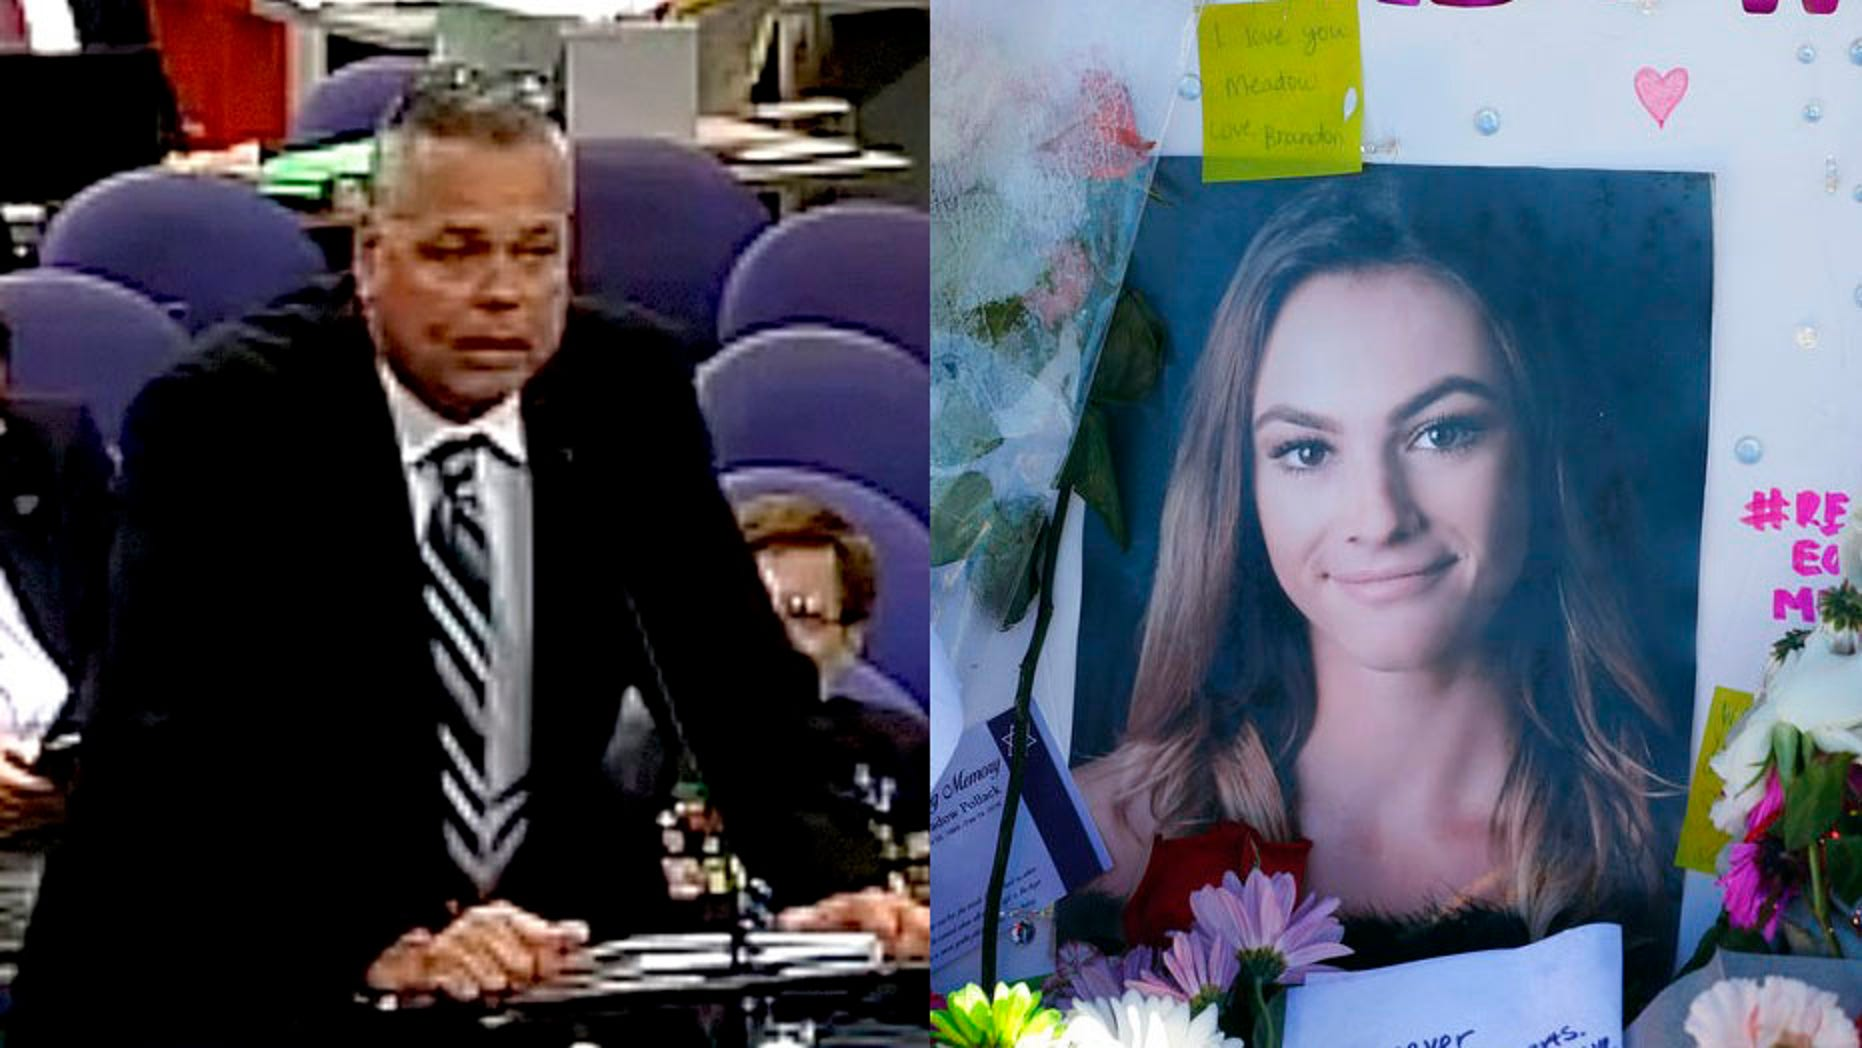 The father of Meadow Pollack filed a wrongful death lawsuit against former Broward County Deputy Scot Peterson on Monday.